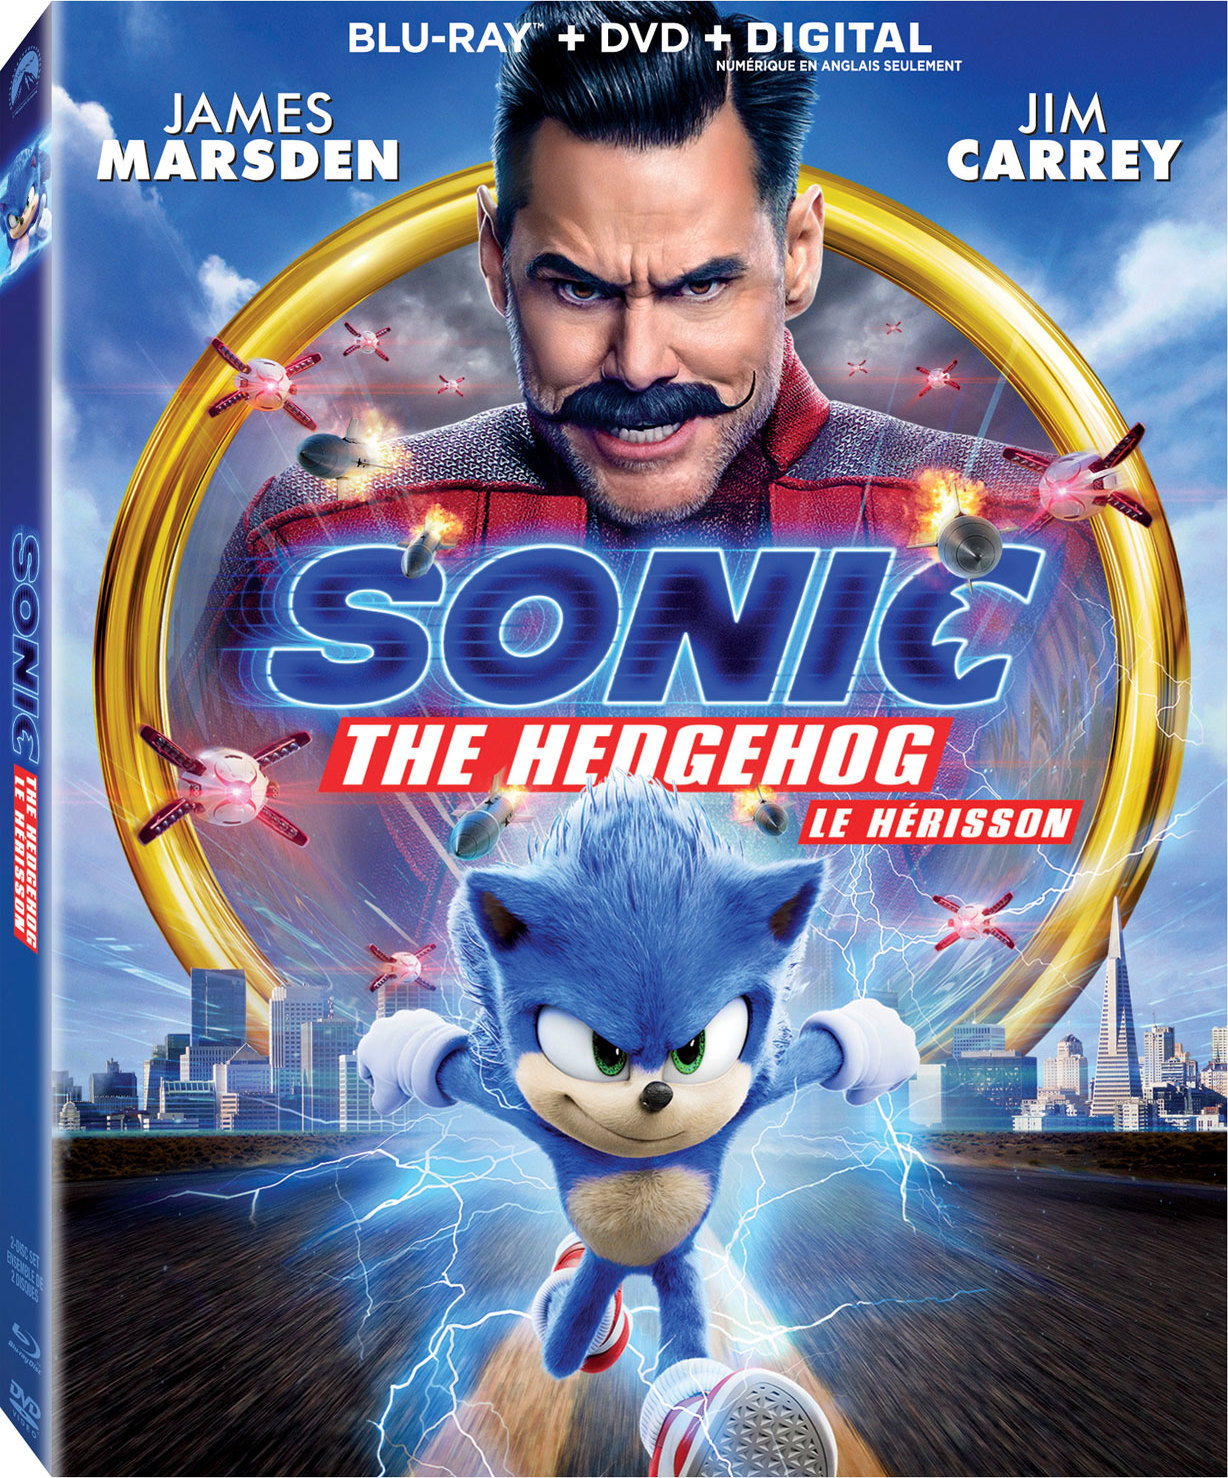 Sonic the Hedgehog (2020) 720p Hindi Dubbed ORG 1.2GB DL